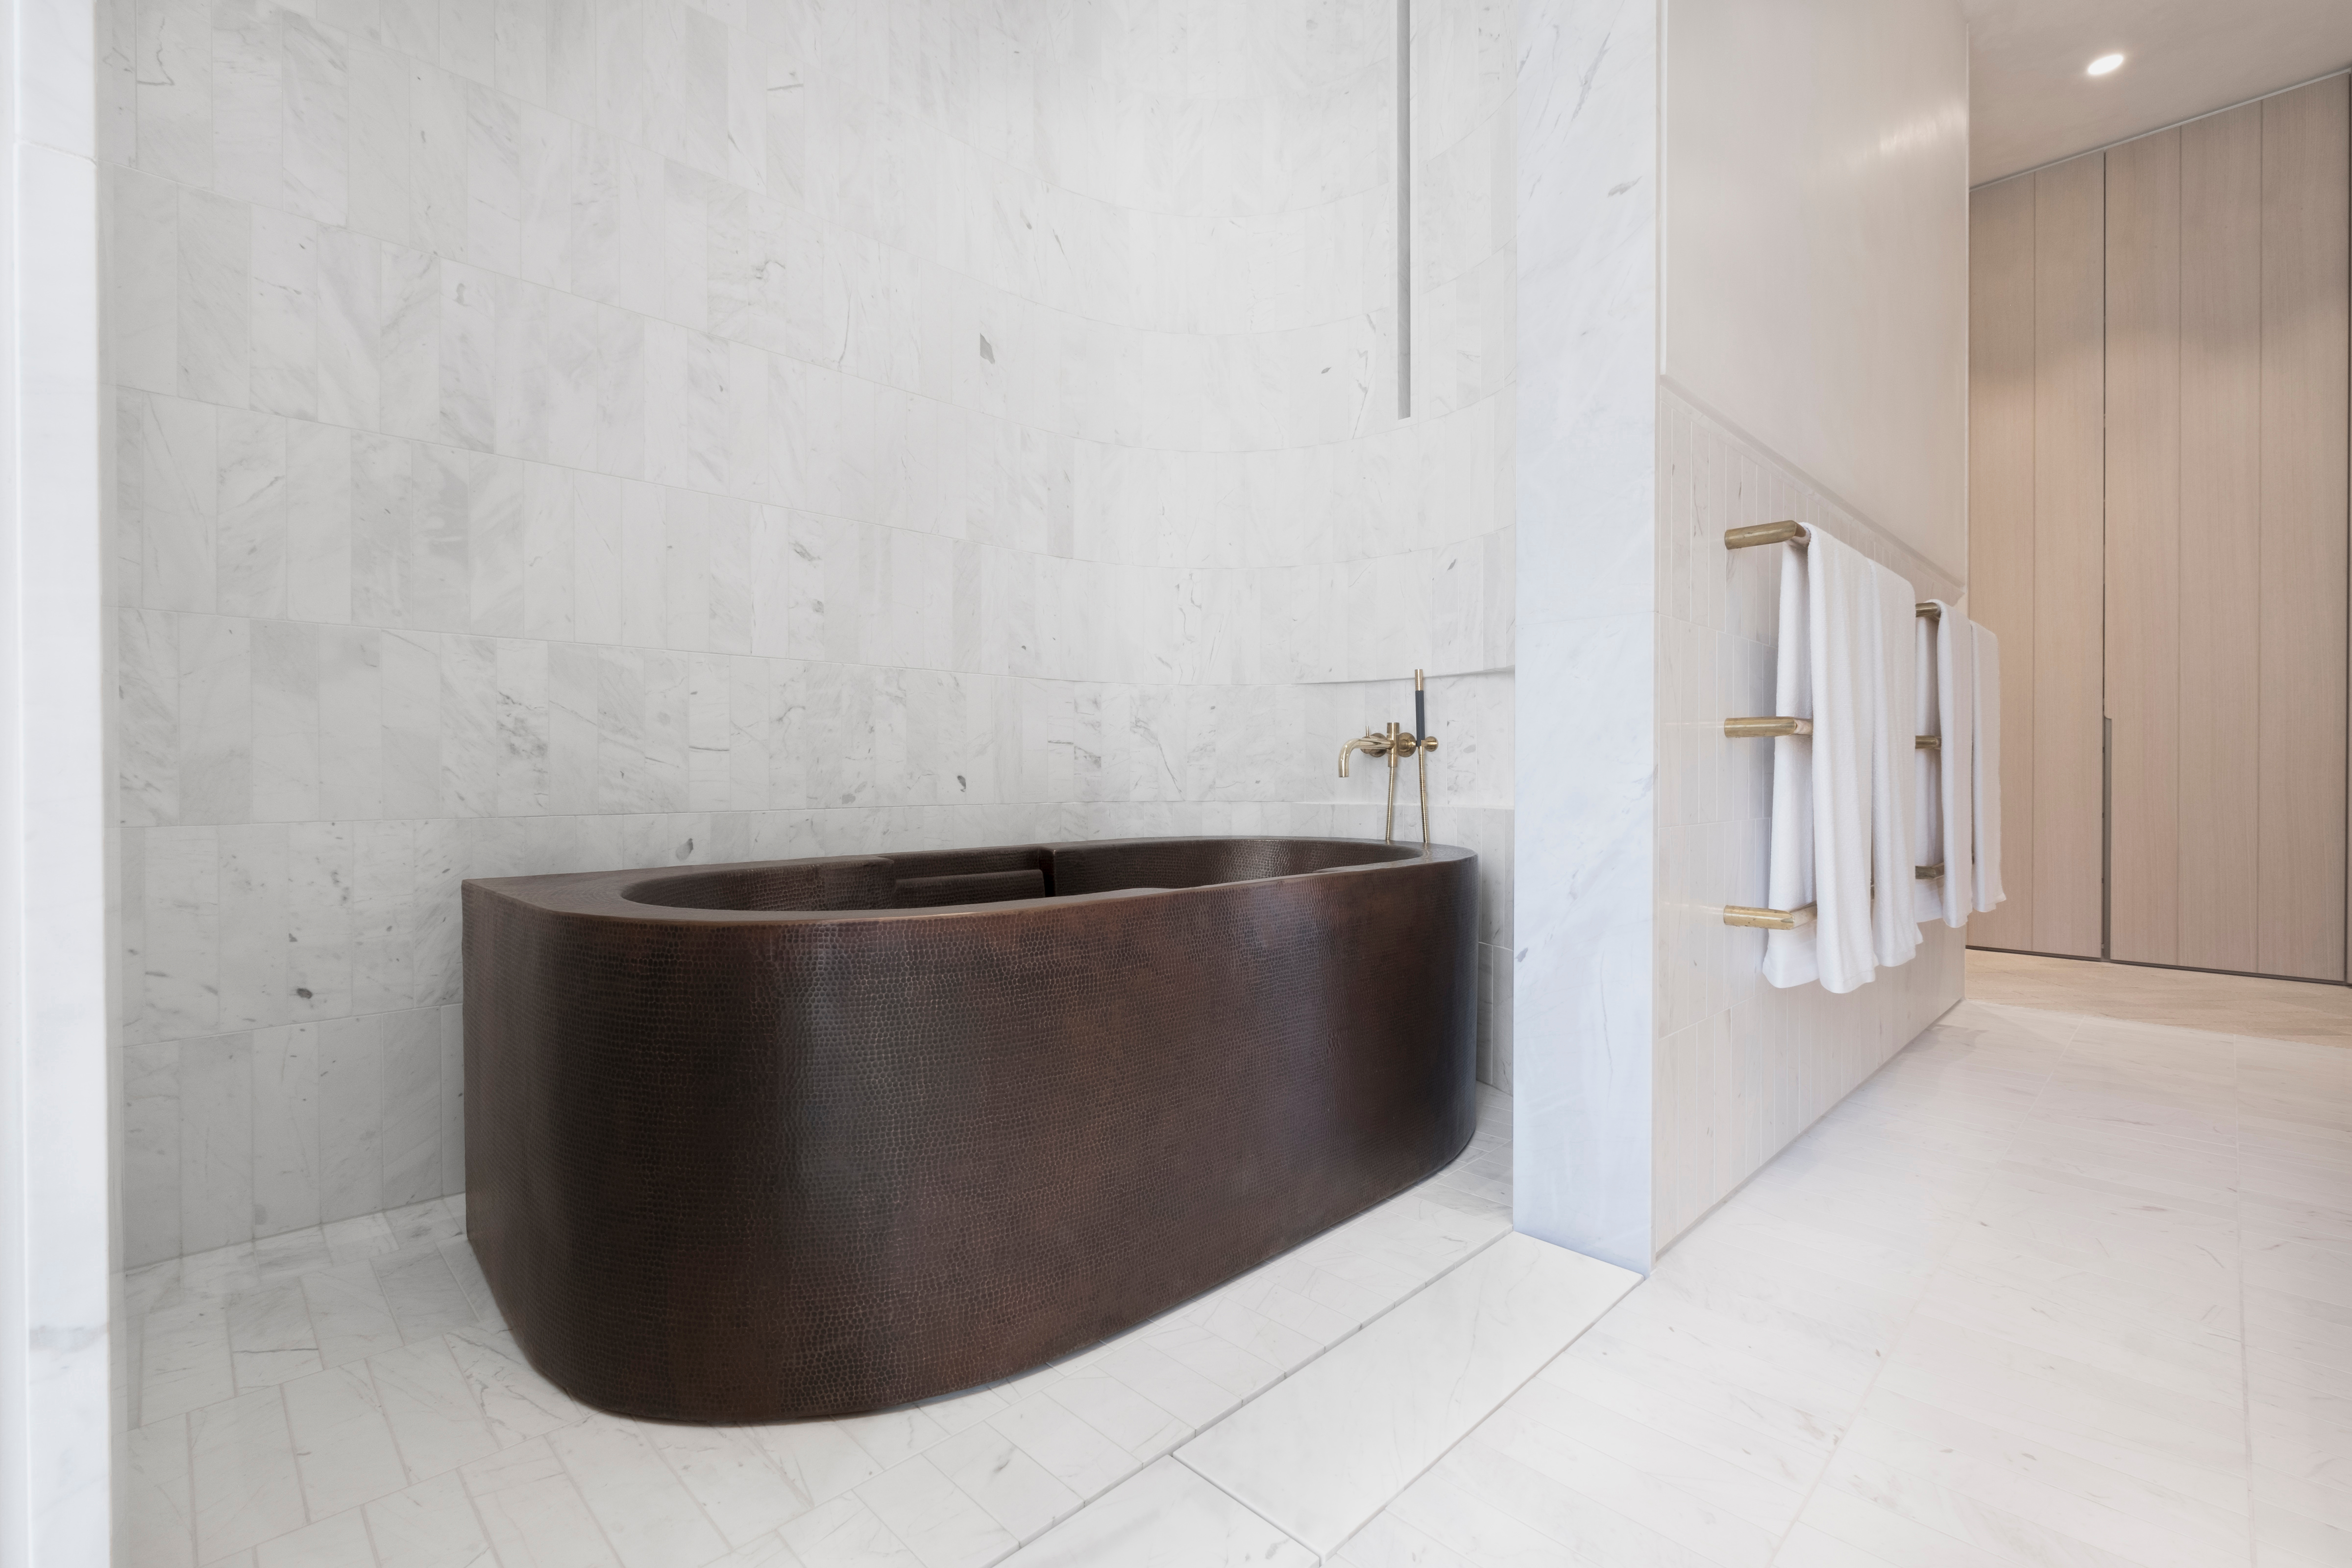 Belle Coco Republic Interior Design Awards Have Announced The Nominees For  Their Interior Design Awards And The Marble Trend That Featured So  Predominately ...